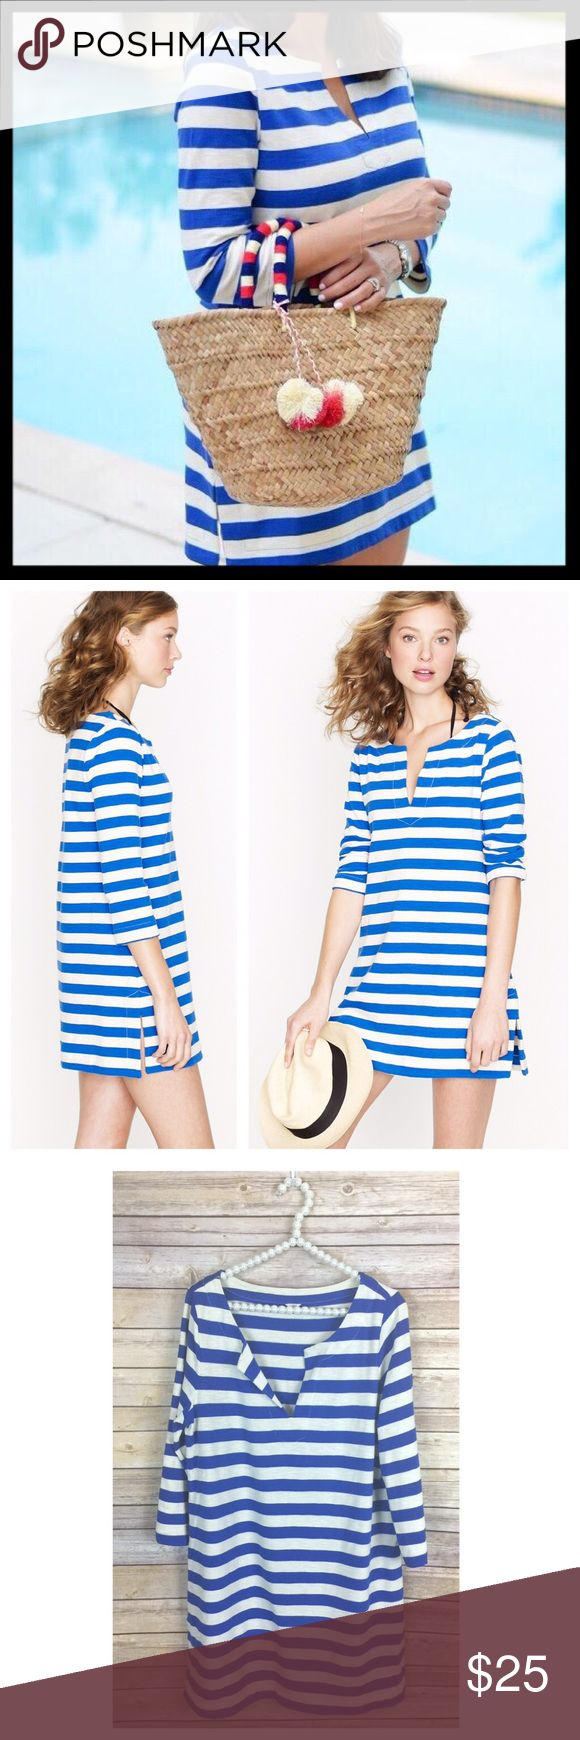 """j. crew // stripe knit tunic dress • blue & white This cute cotton tunic dress has blue and white stripes. Henley neckline. Slightly heavyweight fabric. Great in warner weather or as a beach cover up (but honestly I love these tunics with leggings!). In great preowned condition. 33"""" long from top of shoulder. J. Crew Dresses Mini"""